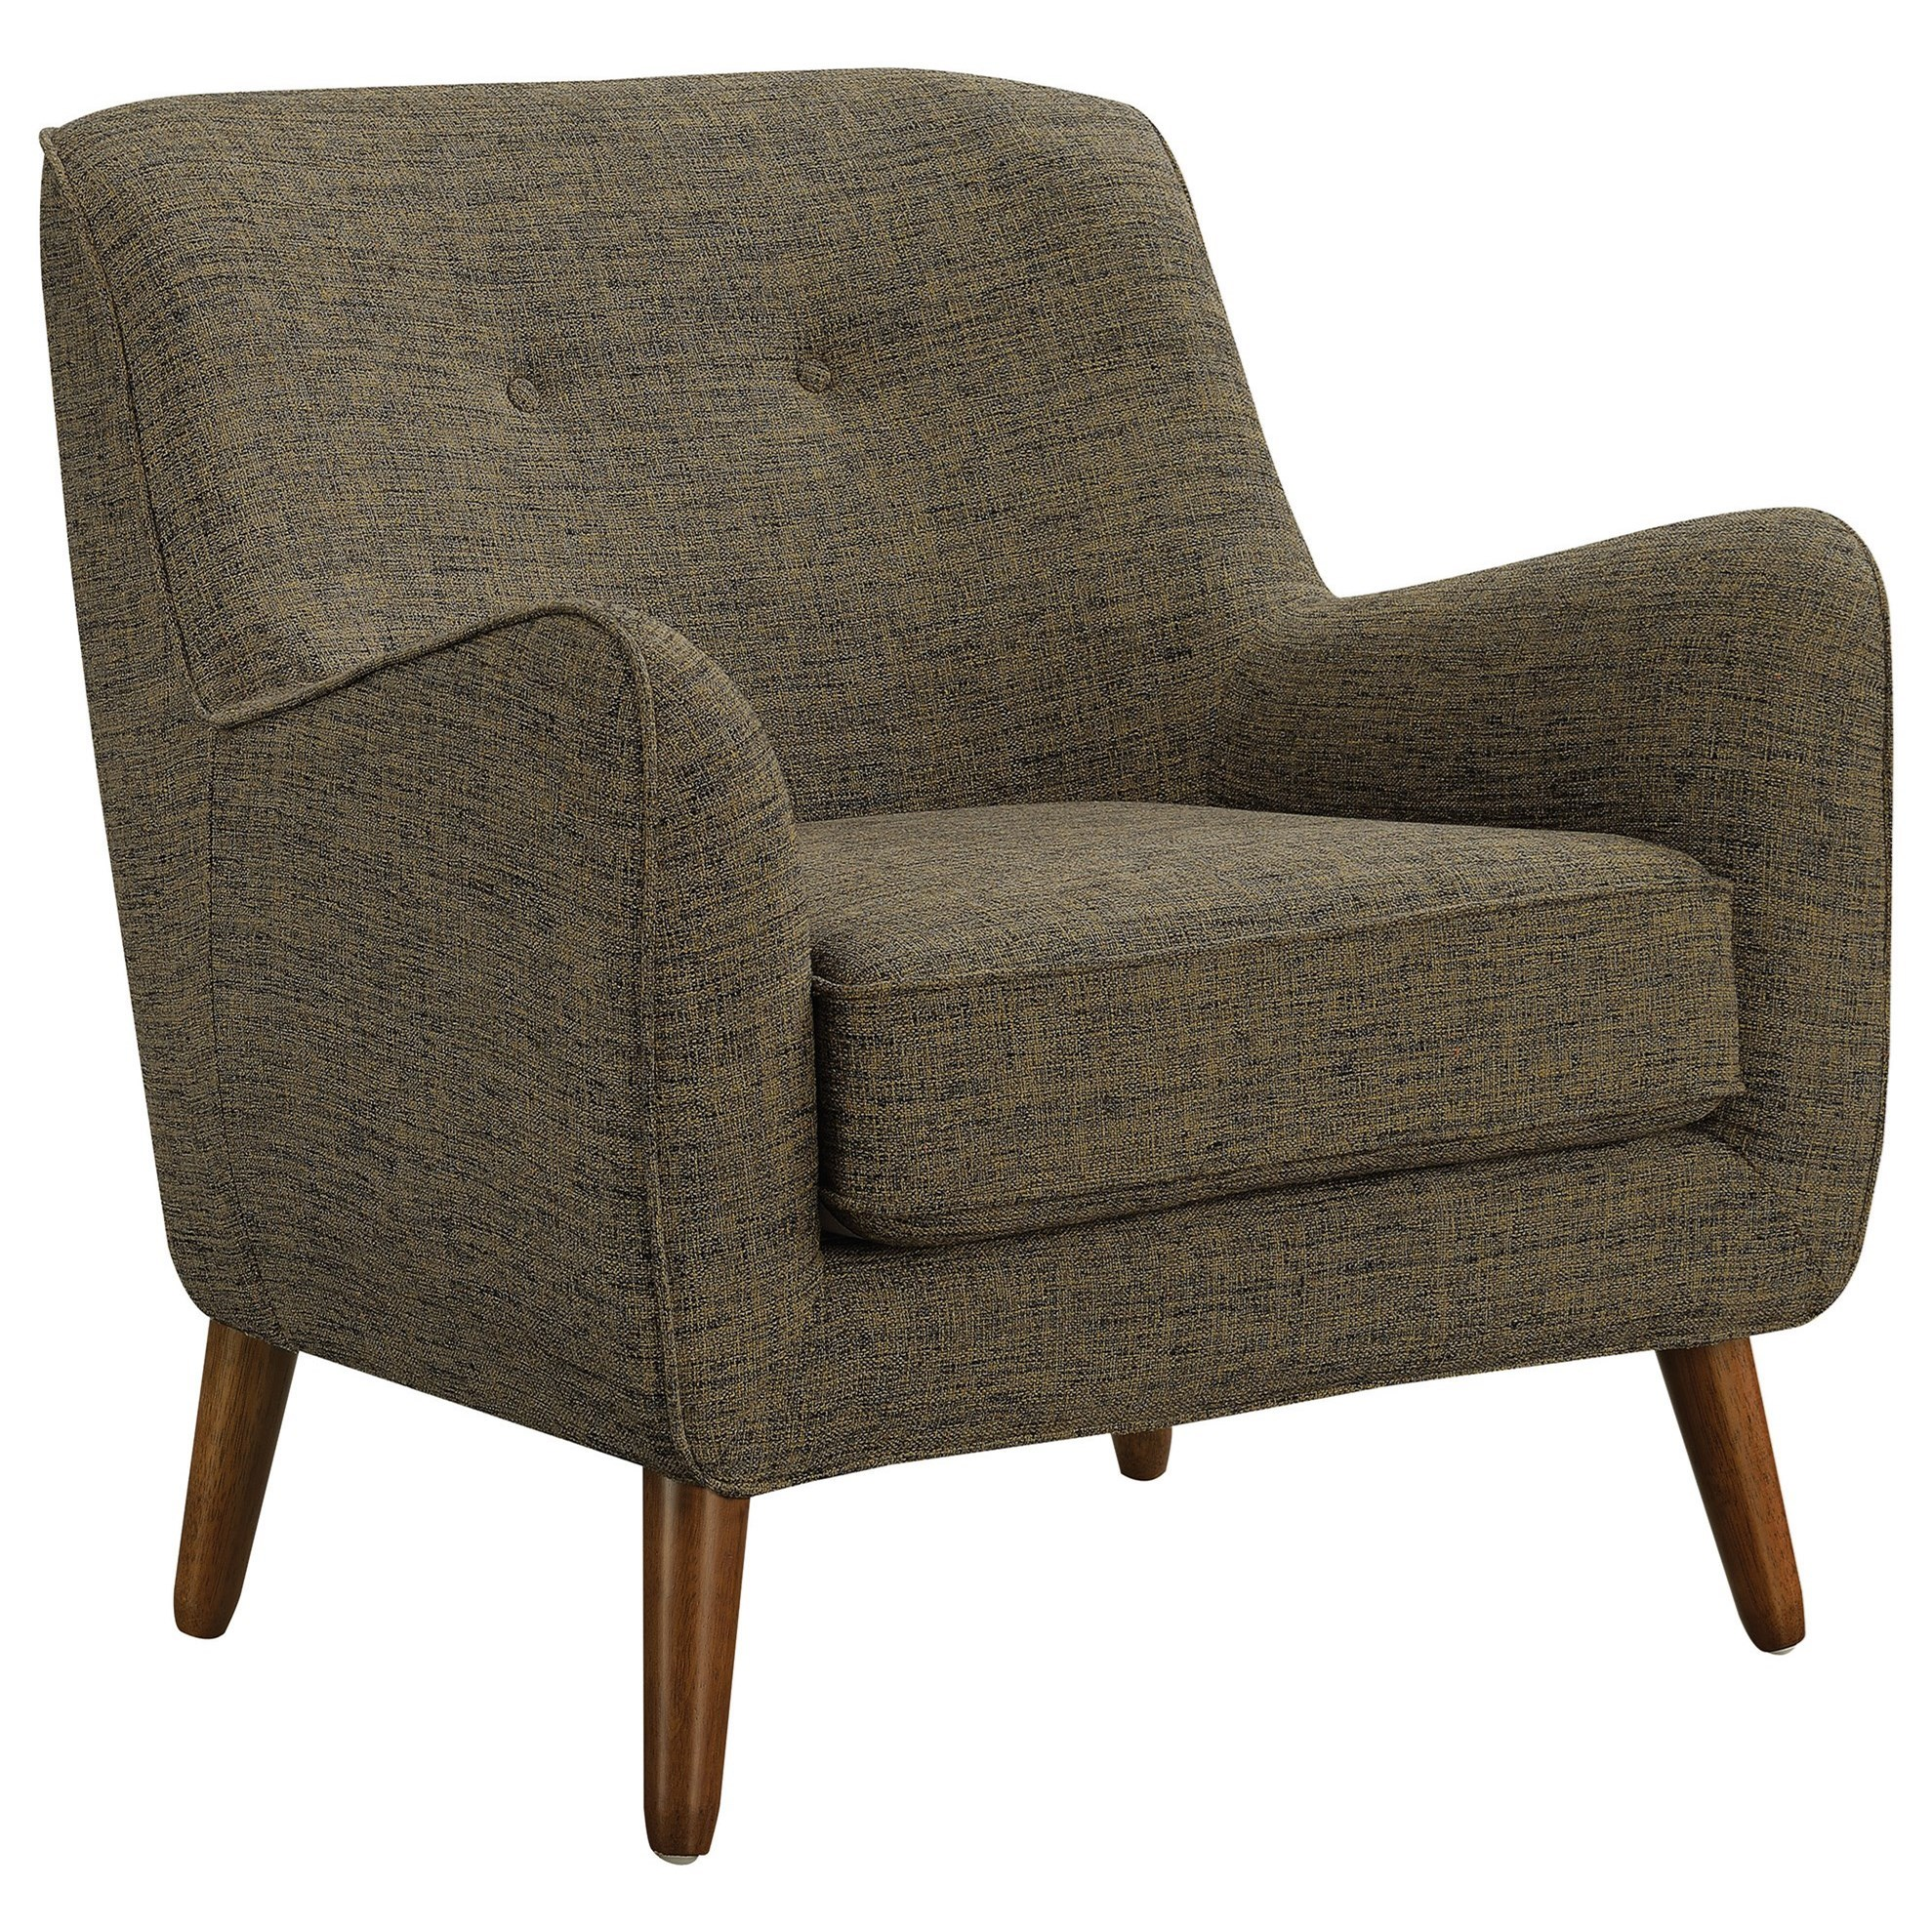 Coaster Accent Seating Chair - Item Number: 904061